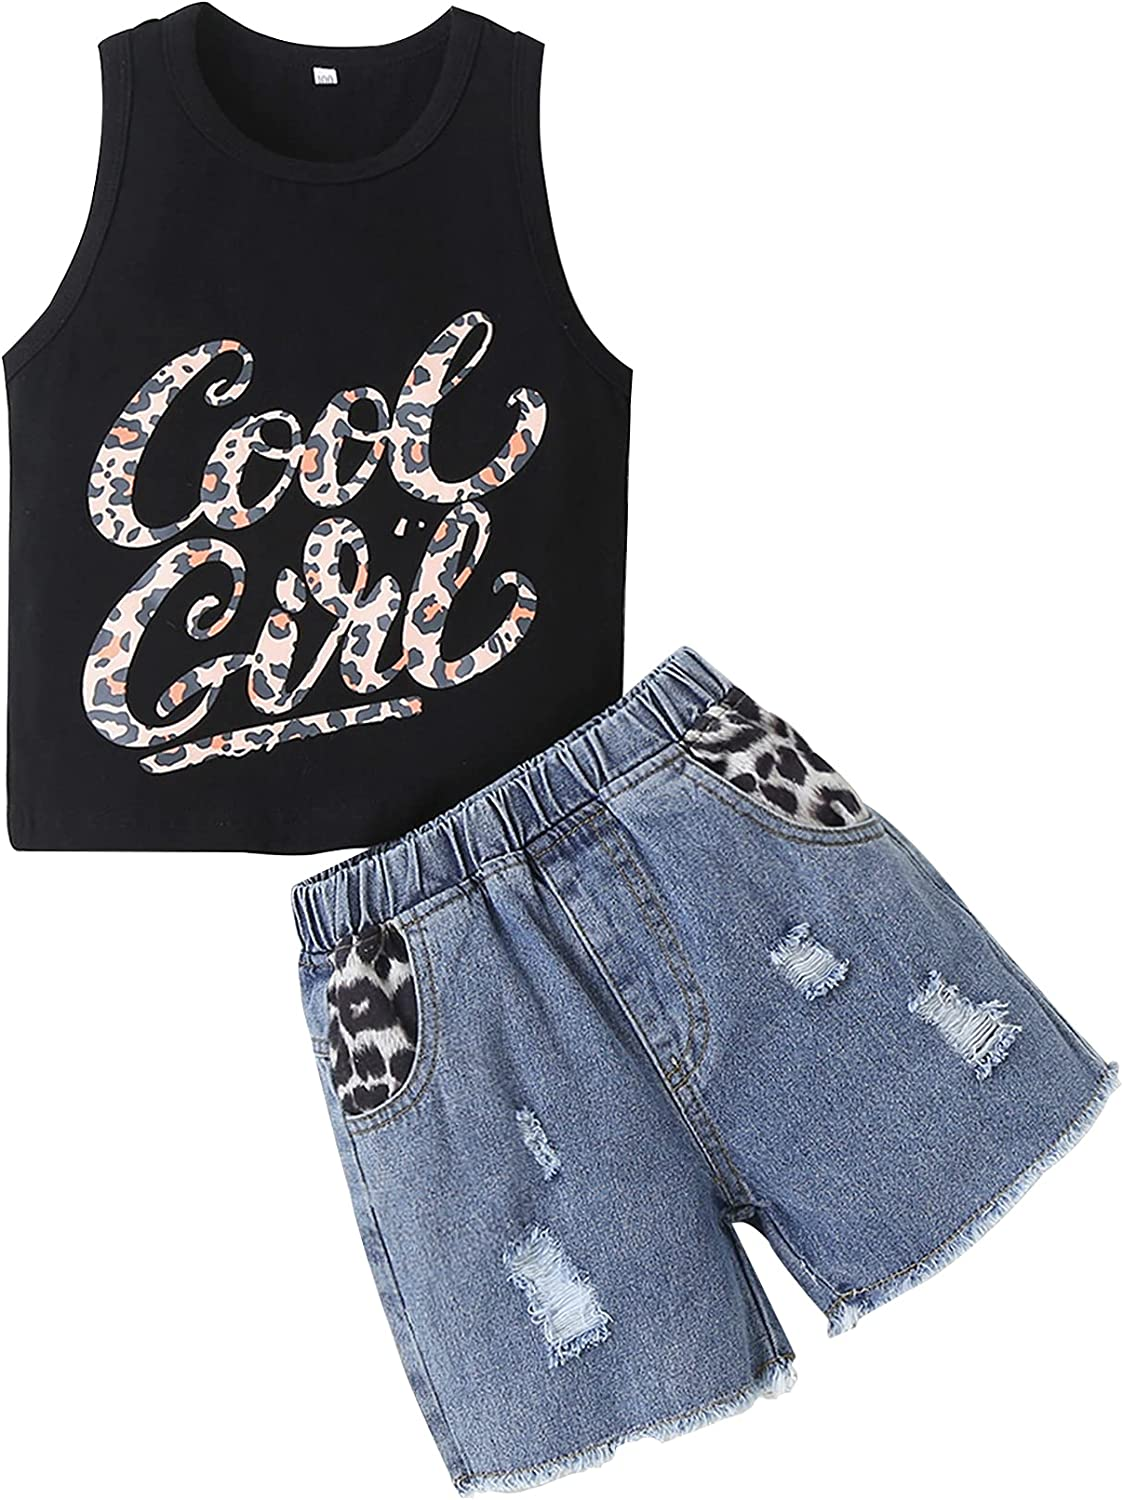 Anmino Toddler Baby Girl Clothes Summer Outfits Leopard Sleeveless Vest Tops+ Ripped Denim